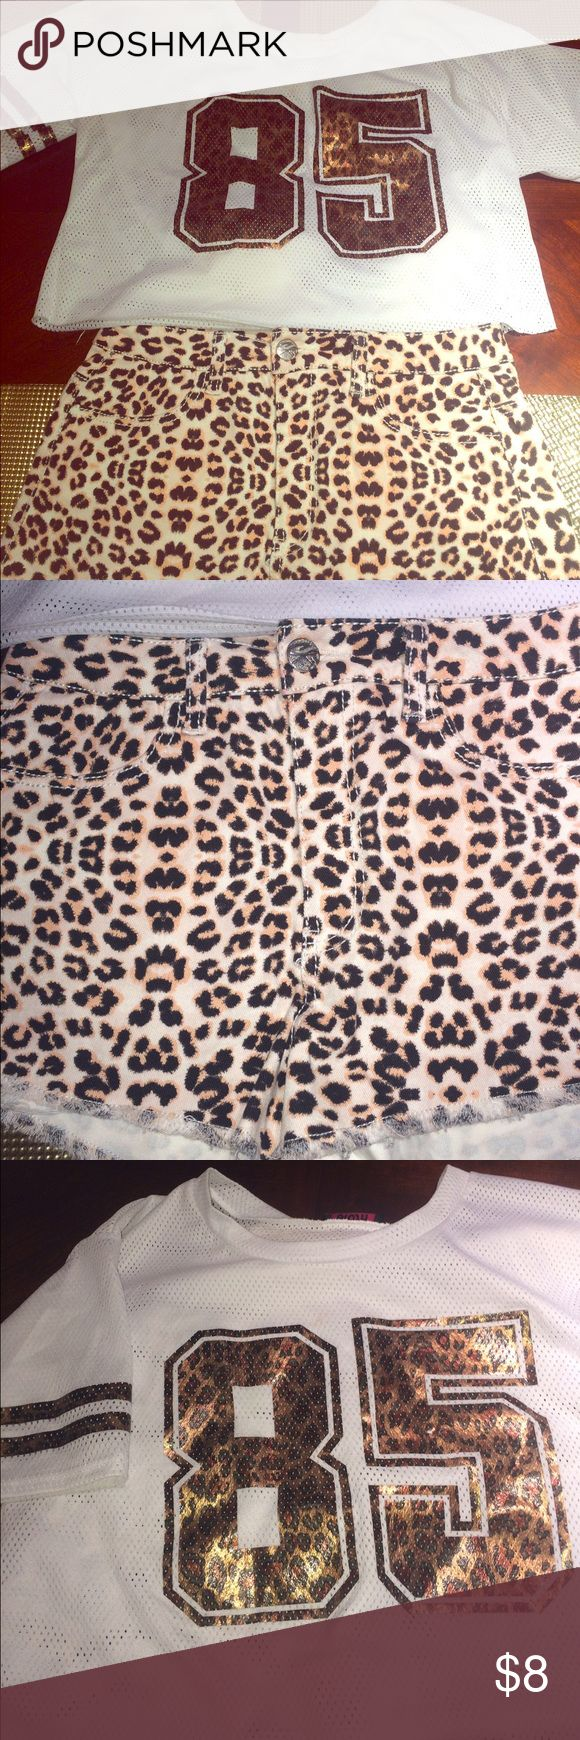 A  Set High Waisted Cheetah Shorts and Crop Top Selling Both of these Together they make a cute matching set The shirt is a jersey Crop Top with the number 84 in cheetah print  and on the sleeves two lines. The shirt is a size small. The High waisted cheetah shorts are a size 9 with a zipper and pockets on the front and back both together ONLY! is 8 Separately make me an offer Almost Famous Shorts